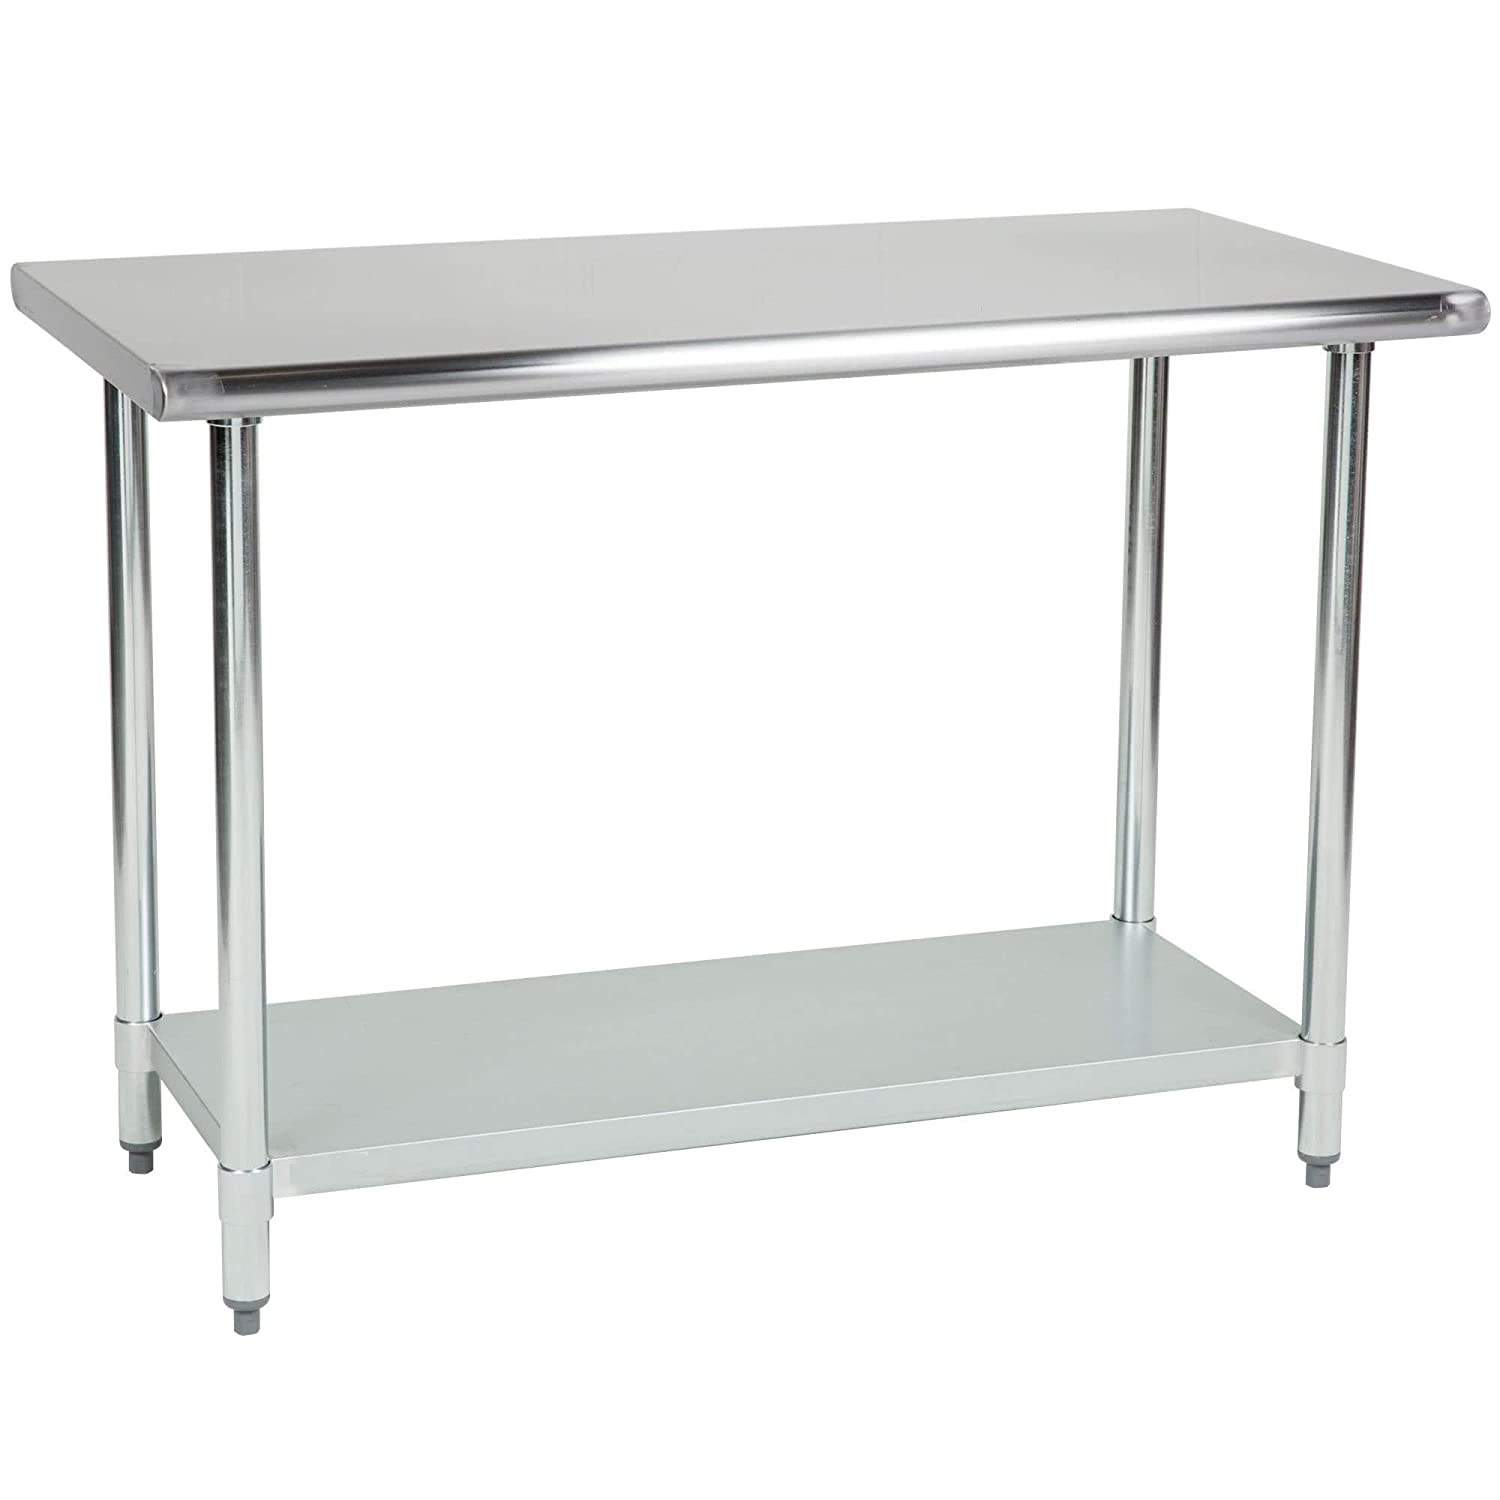 Stainless Steel Kitchen Food Prep Work Table 14 x 30 - NSF - Heavy Duty